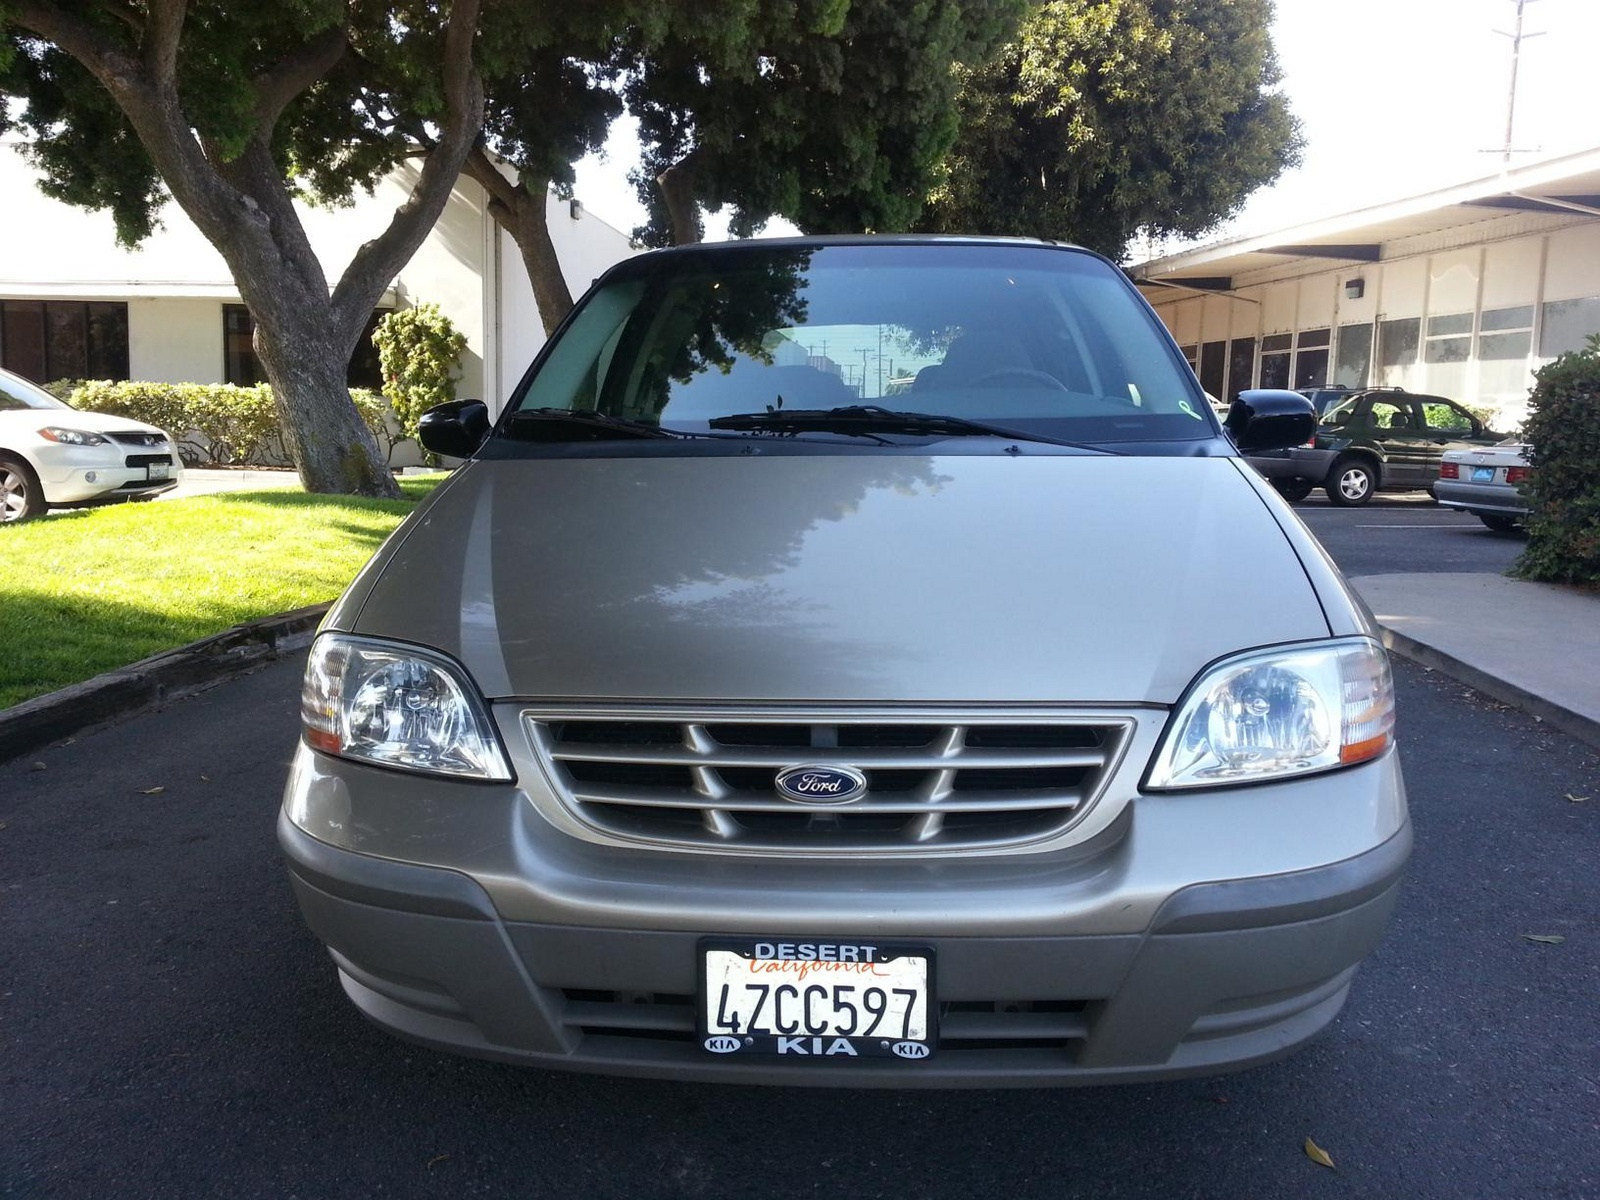 00 ford windstar: